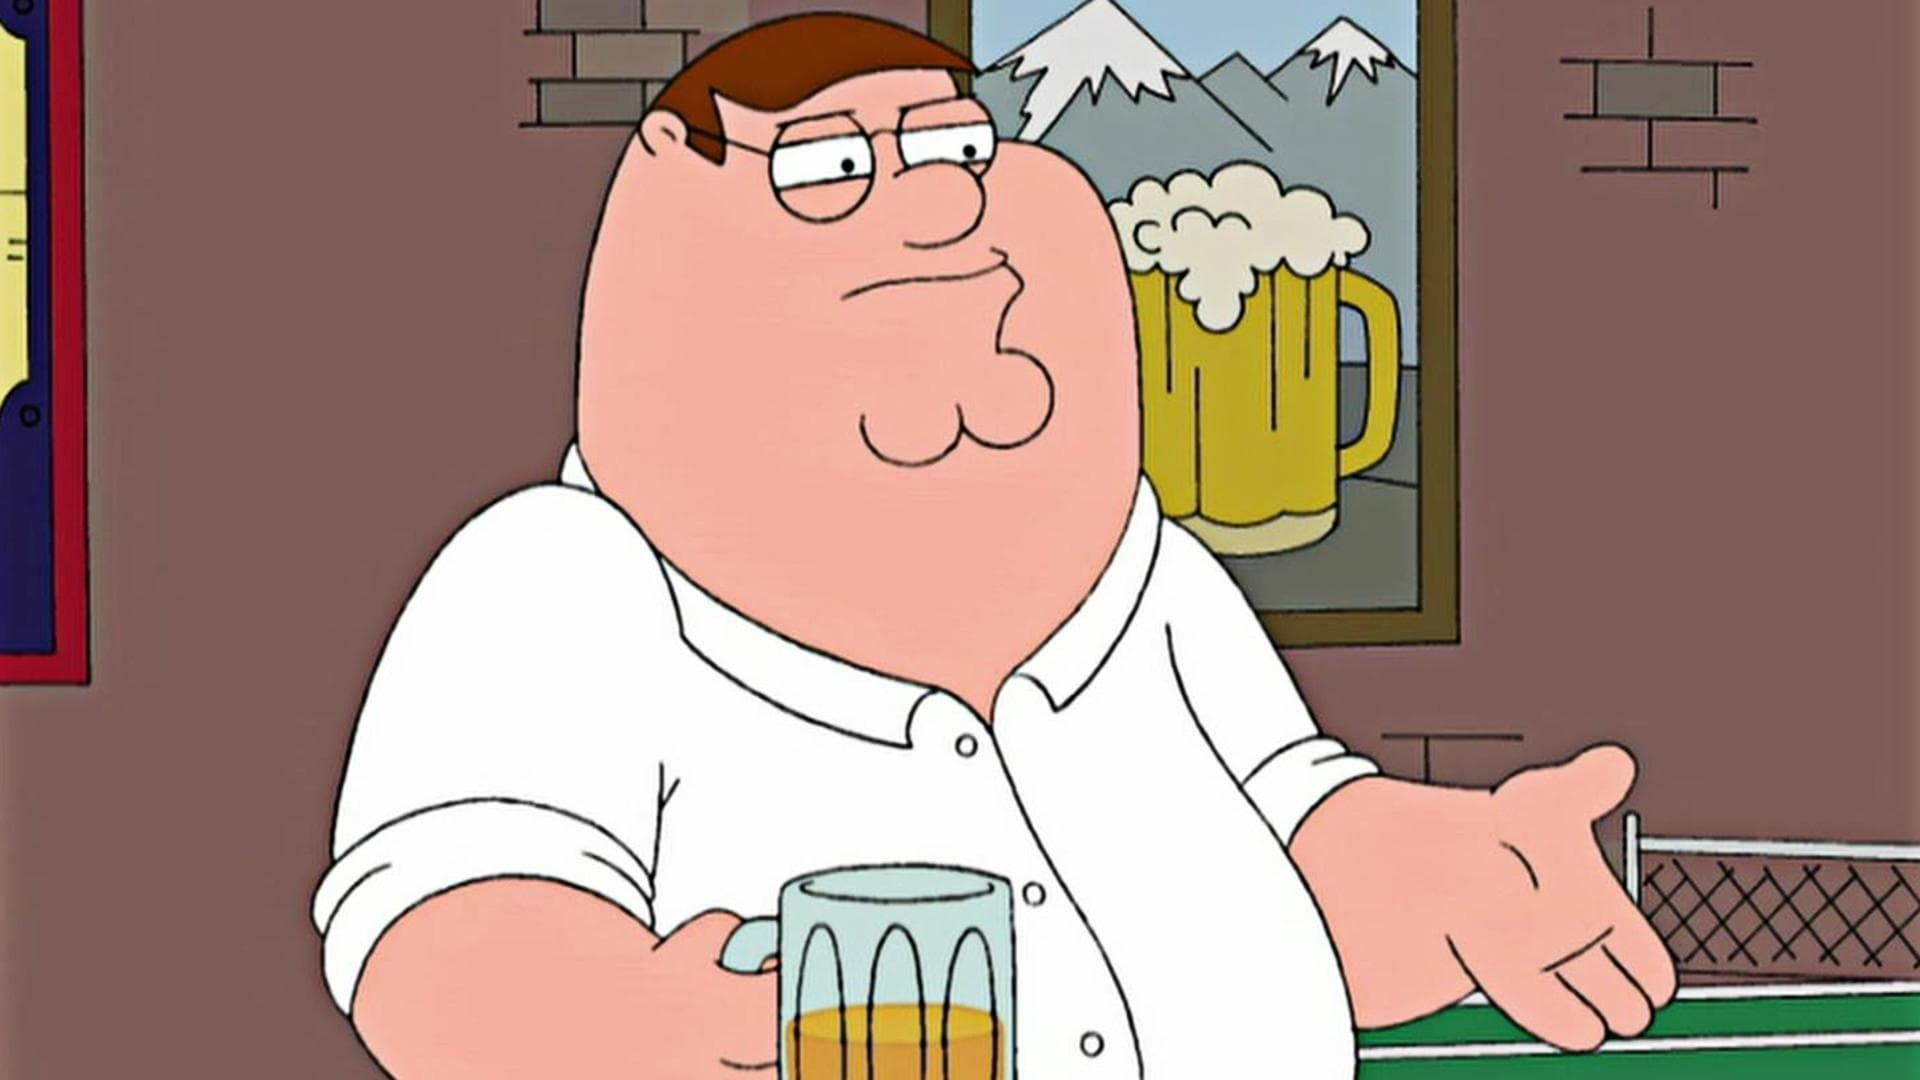 family guy season 5 episode 3 cucirca